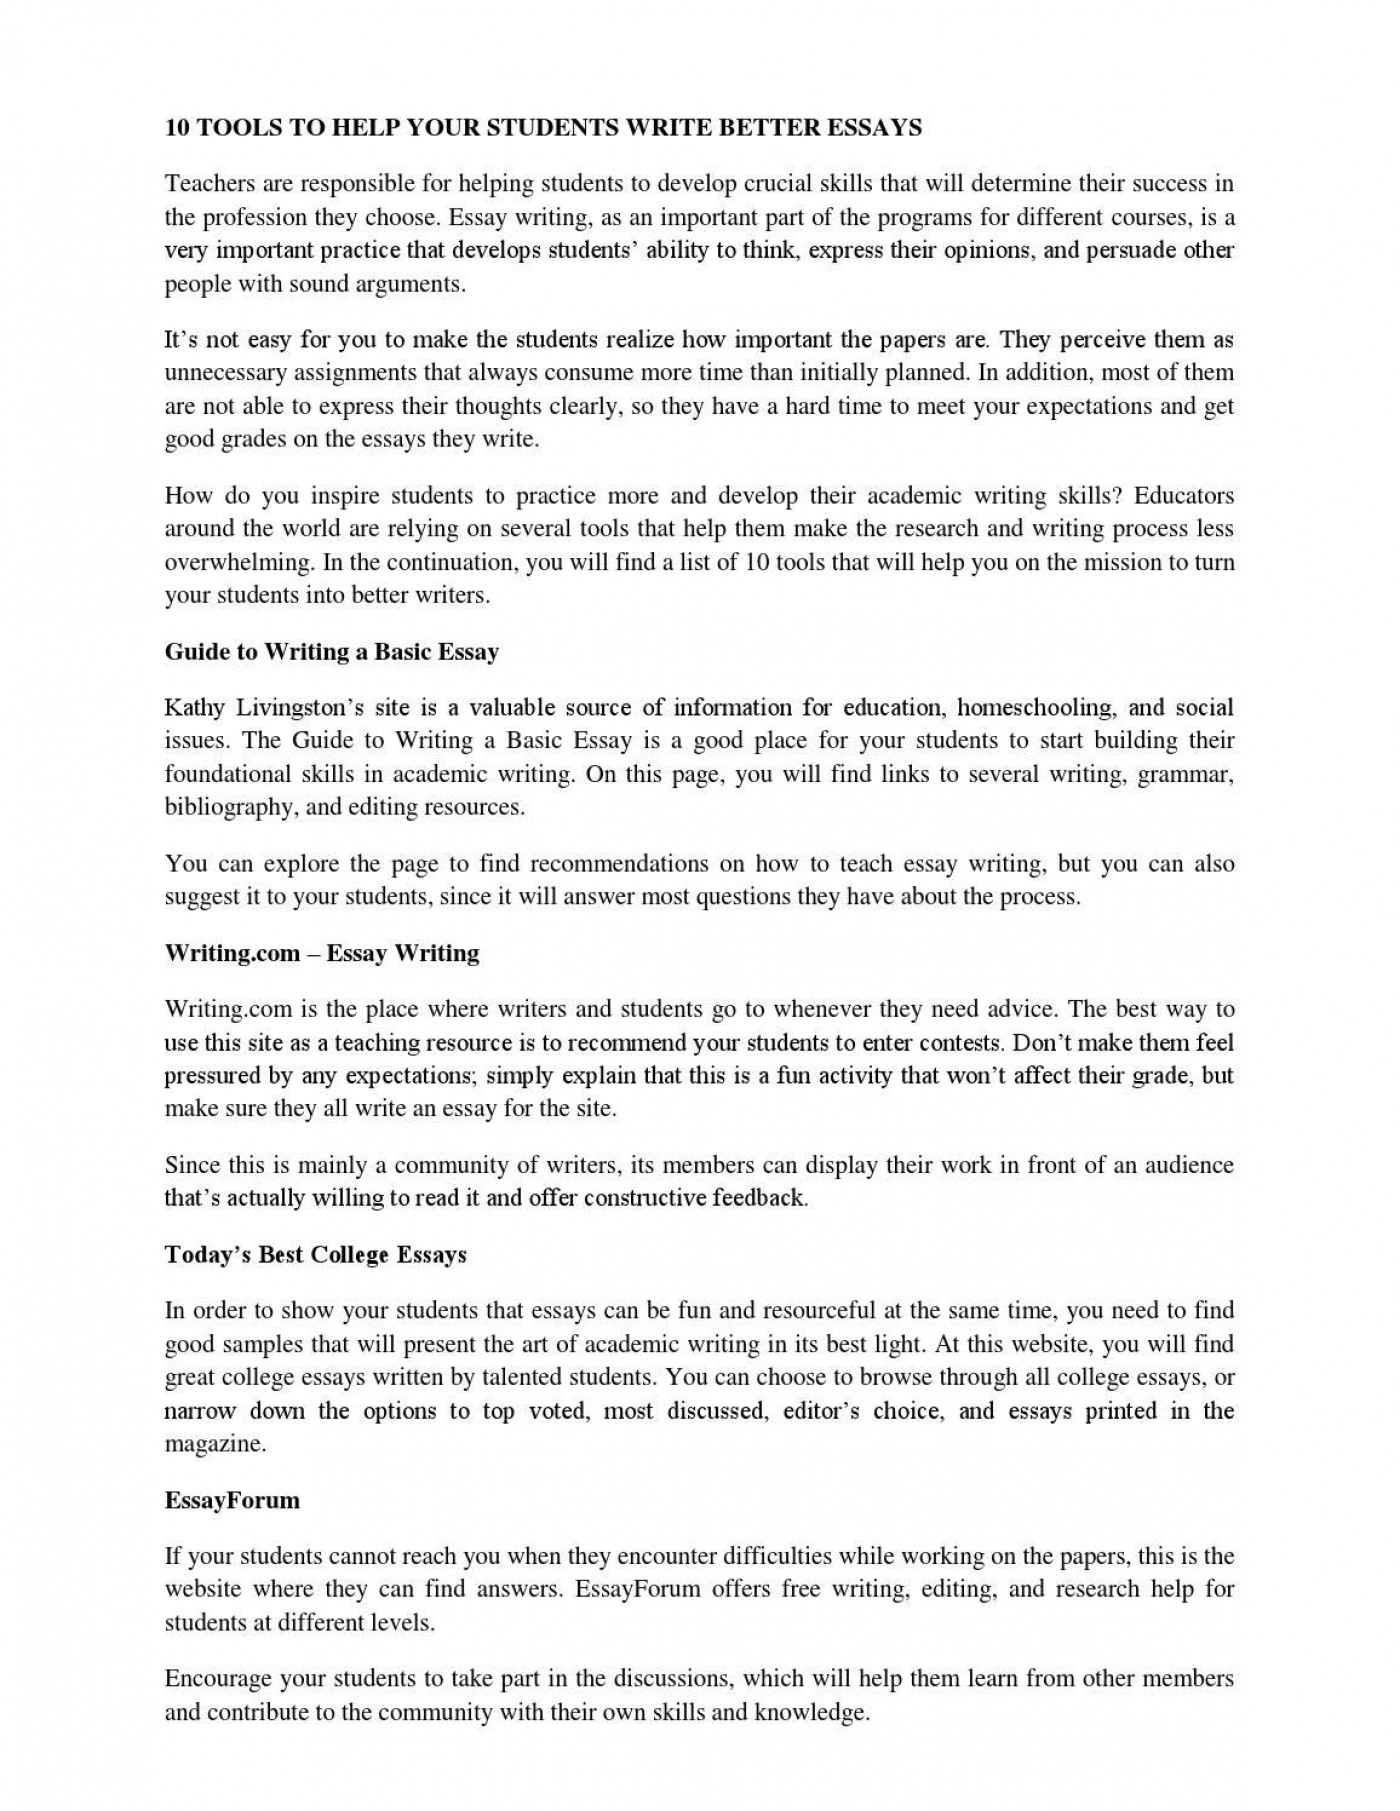 025 Essay Writing Websites Reviews For Students Editing Free Page Research Paper Example That20 Online Stirring Papers Submission Of Pdf Psychology 1400